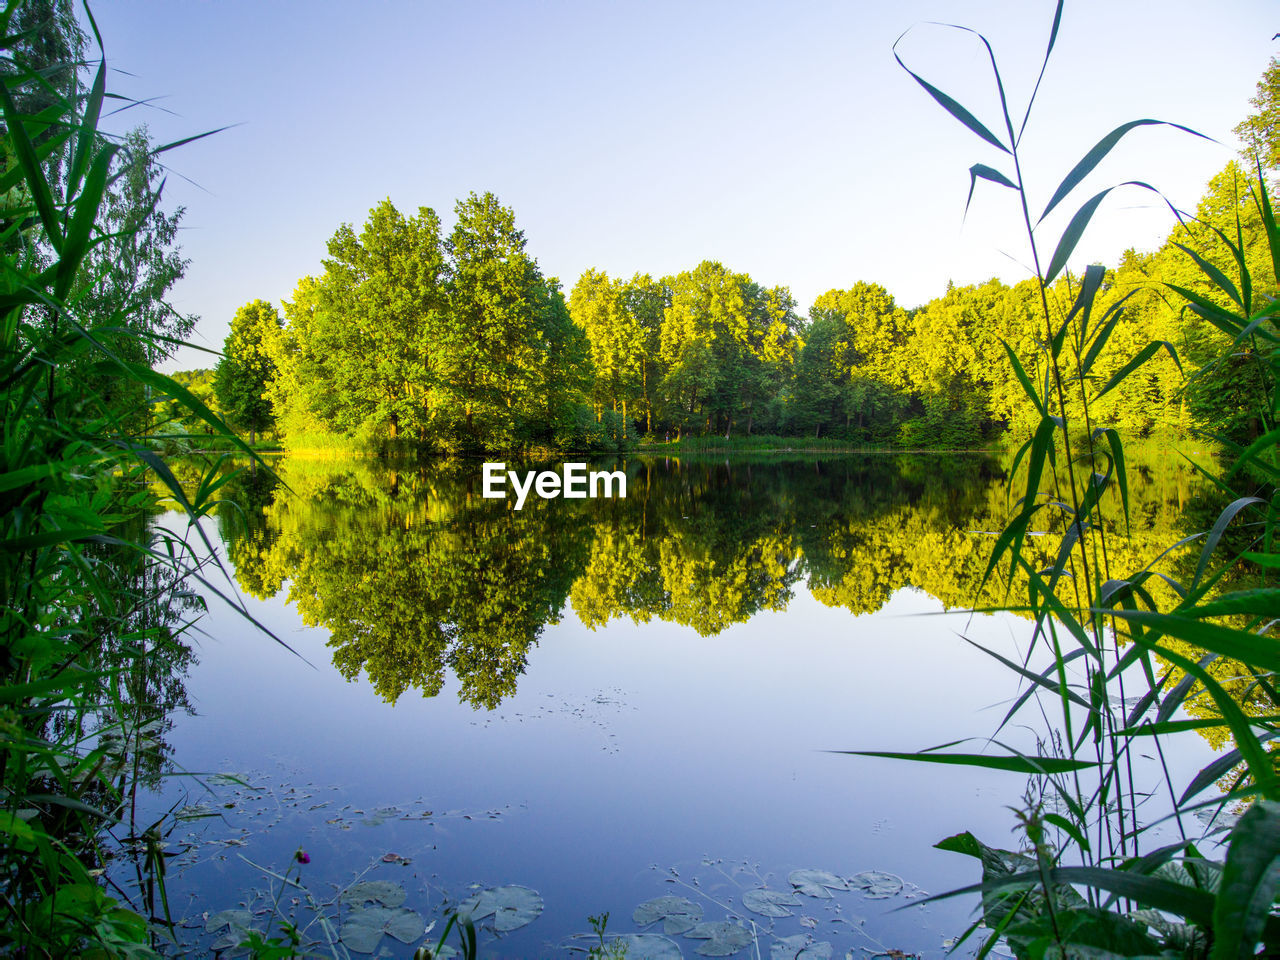 reflection, tree, nature, beauty in nature, lake, plant, water, growth, tranquil scene, green color, no people, outdoors, clear sky, day, sky, scenics